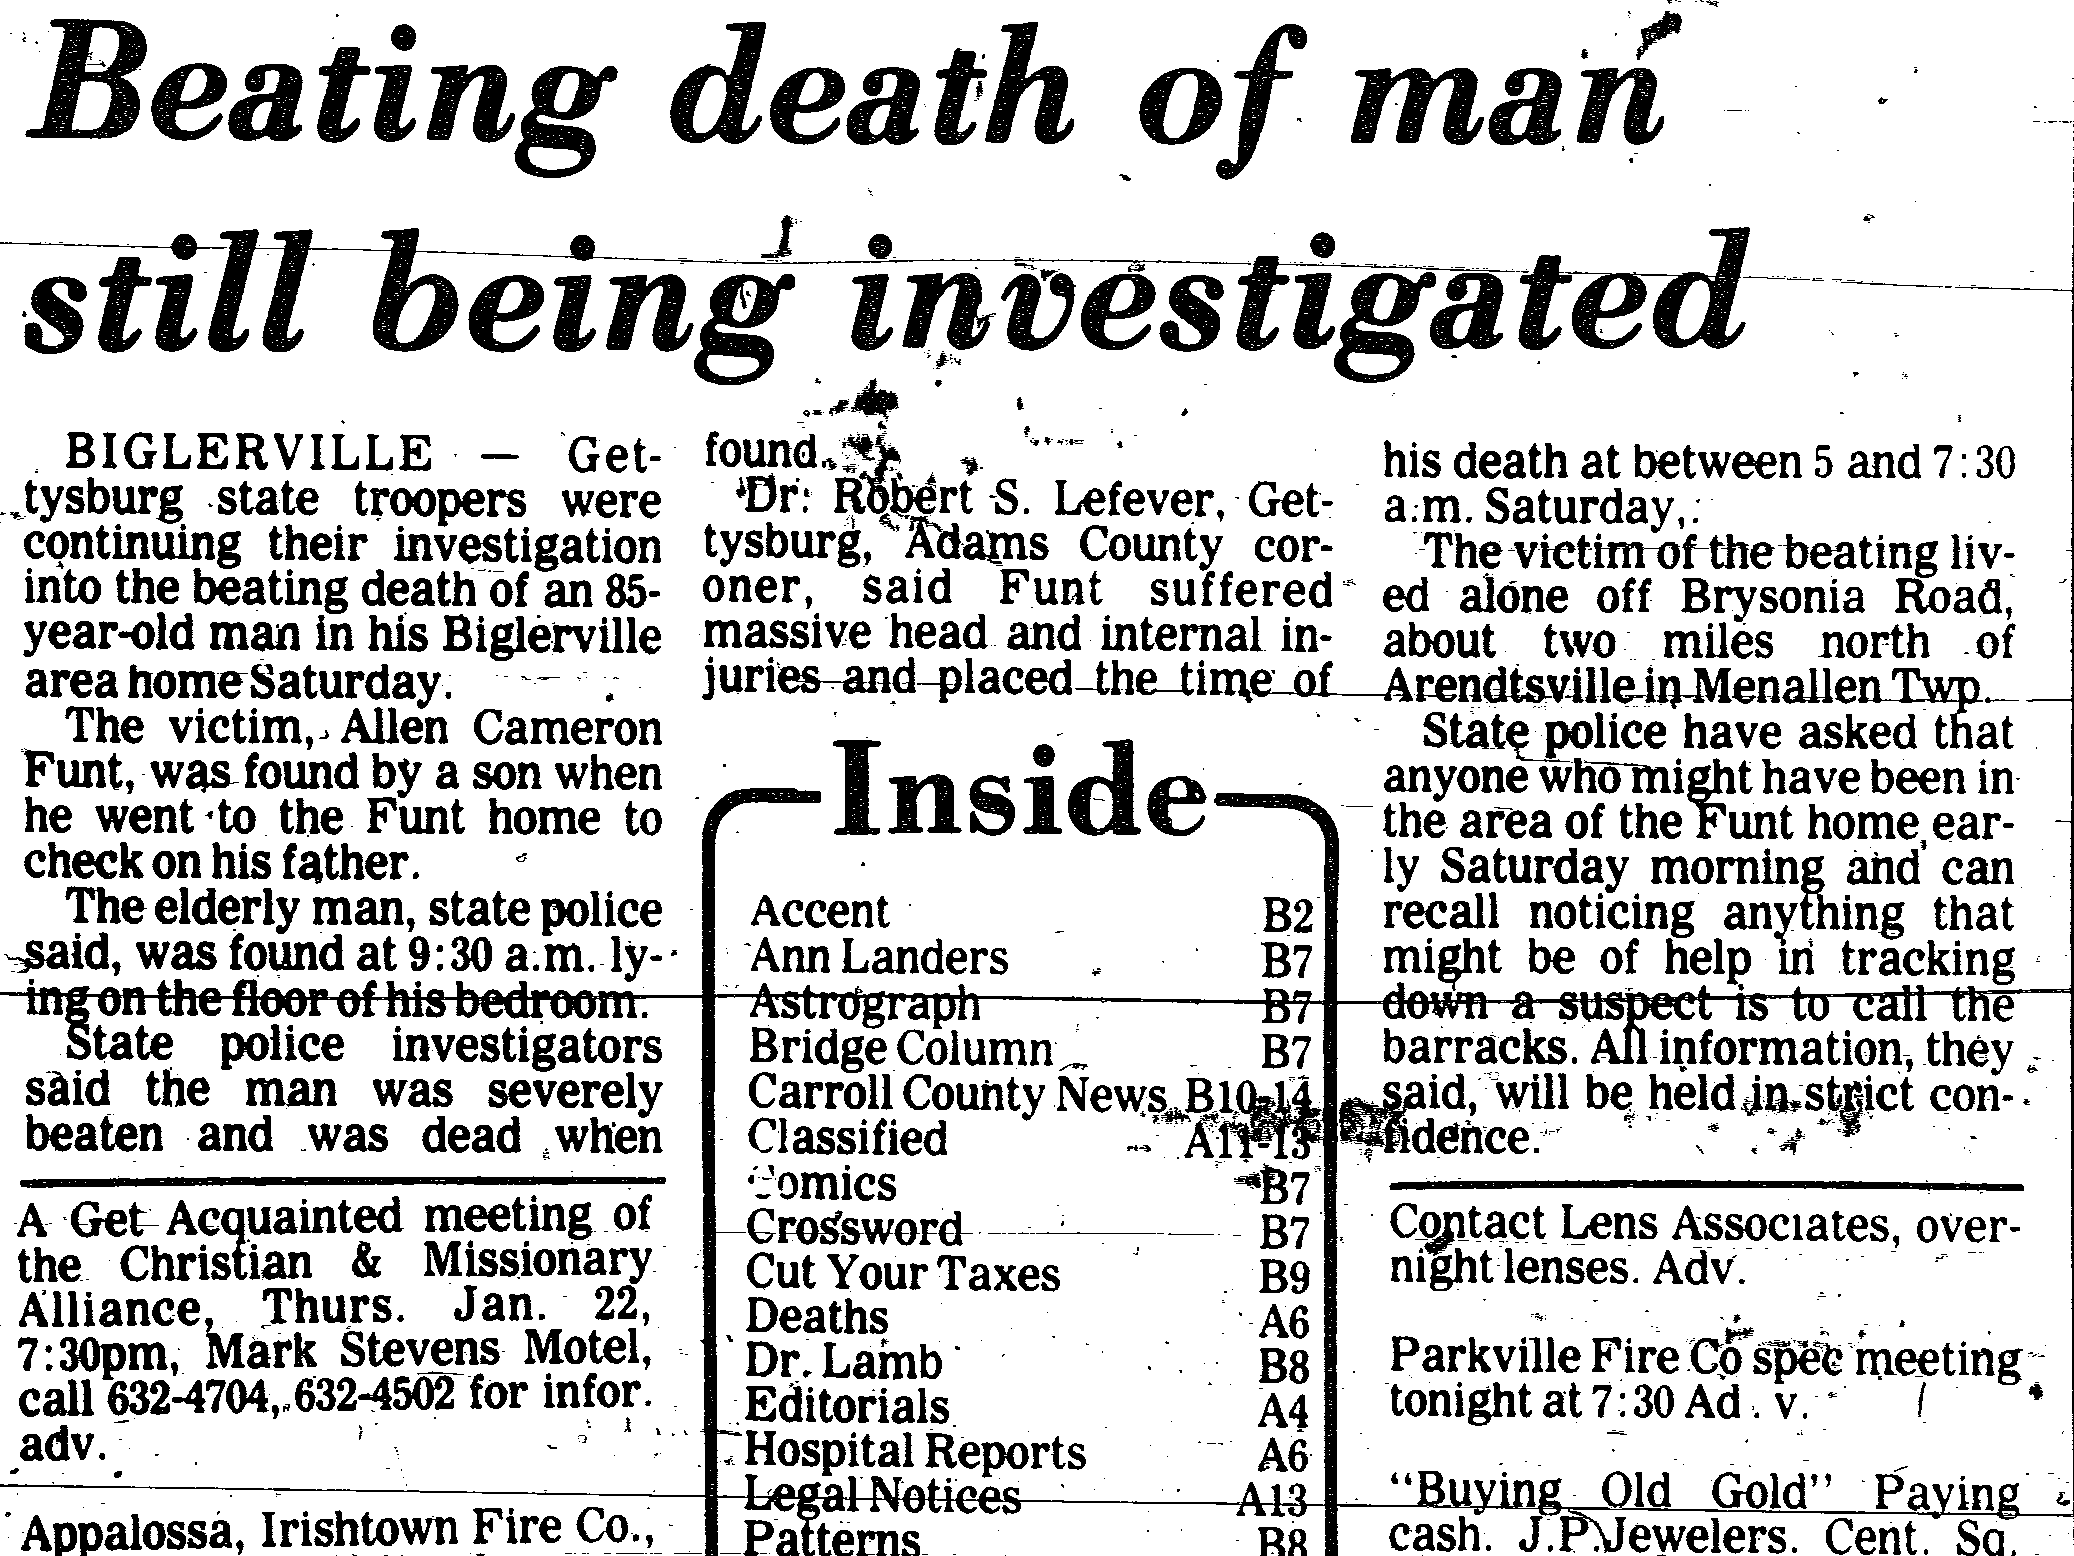 An article from January 19, 1981 reports on the beating death of Allen Funt, 85, of Menallen Township.